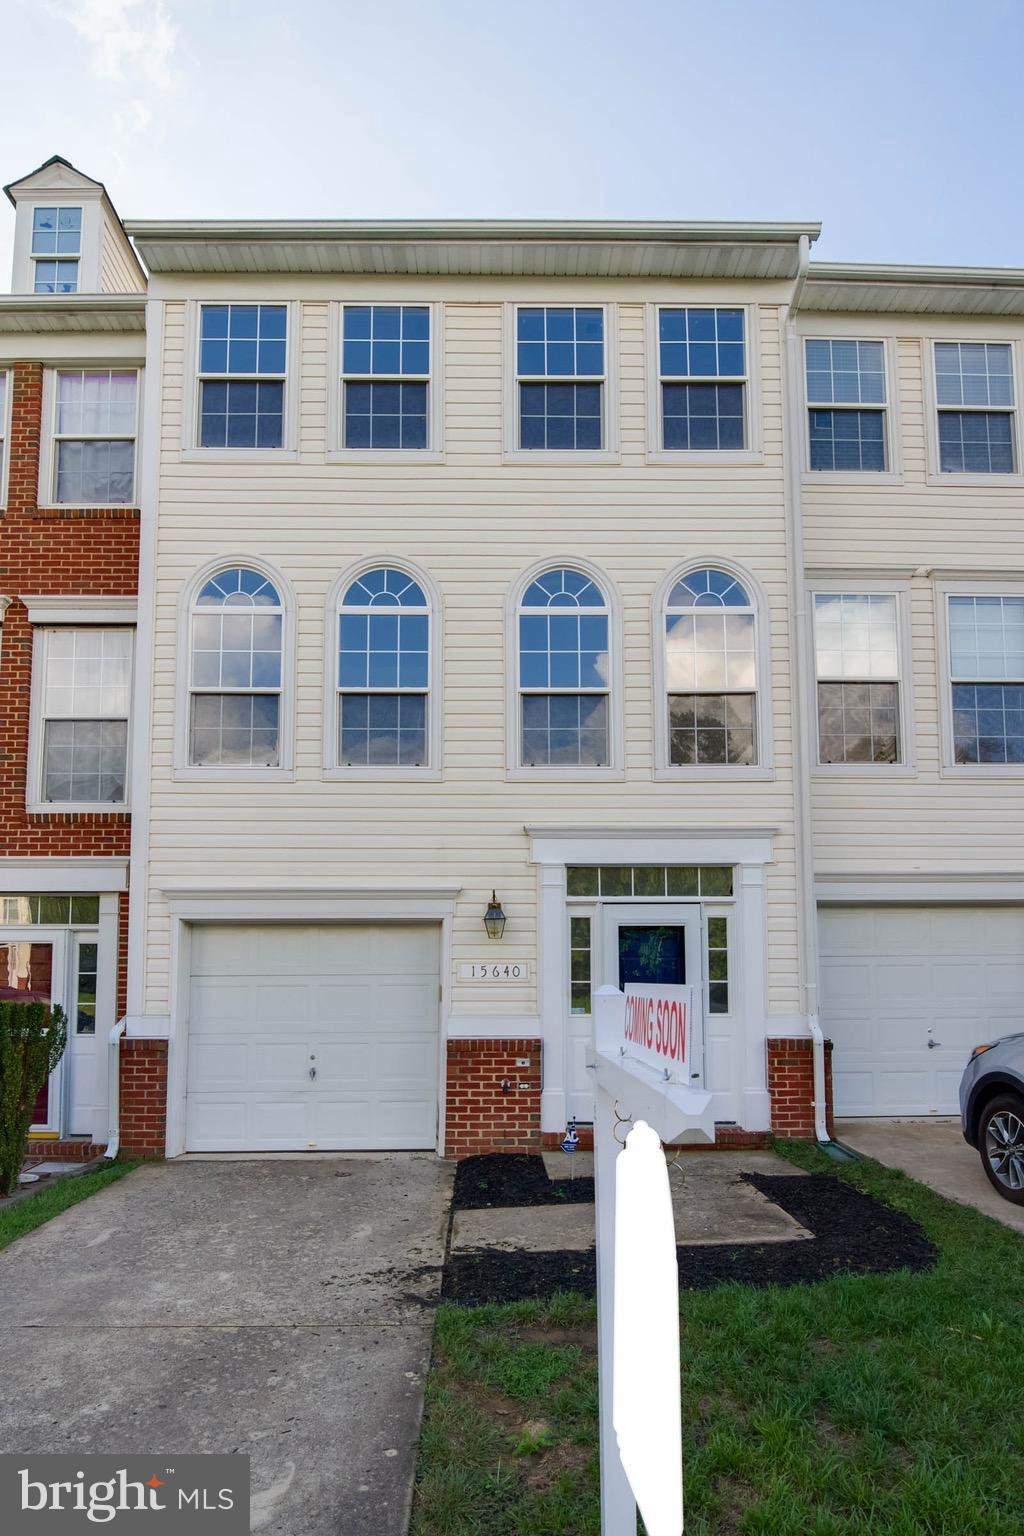 COMMUTER'S DELIGHT - MOVE-IN READY, NEW PAINT & CARPET - 1CAR GARAGE * LIGHT FILLED 3 BR & 3.5 BA * SPACIOUS KITCHEN W/EATING AREA - FINISHED BASEMENT W/ GAS FIREPLACE * MASTER BATH W/ SOAKING TUB * WALKOUT  FENCED YARD BACKING TREES - EASY ACCESS TO I-95, SHOPS & RESTAURANTS & WALK TO VRE.